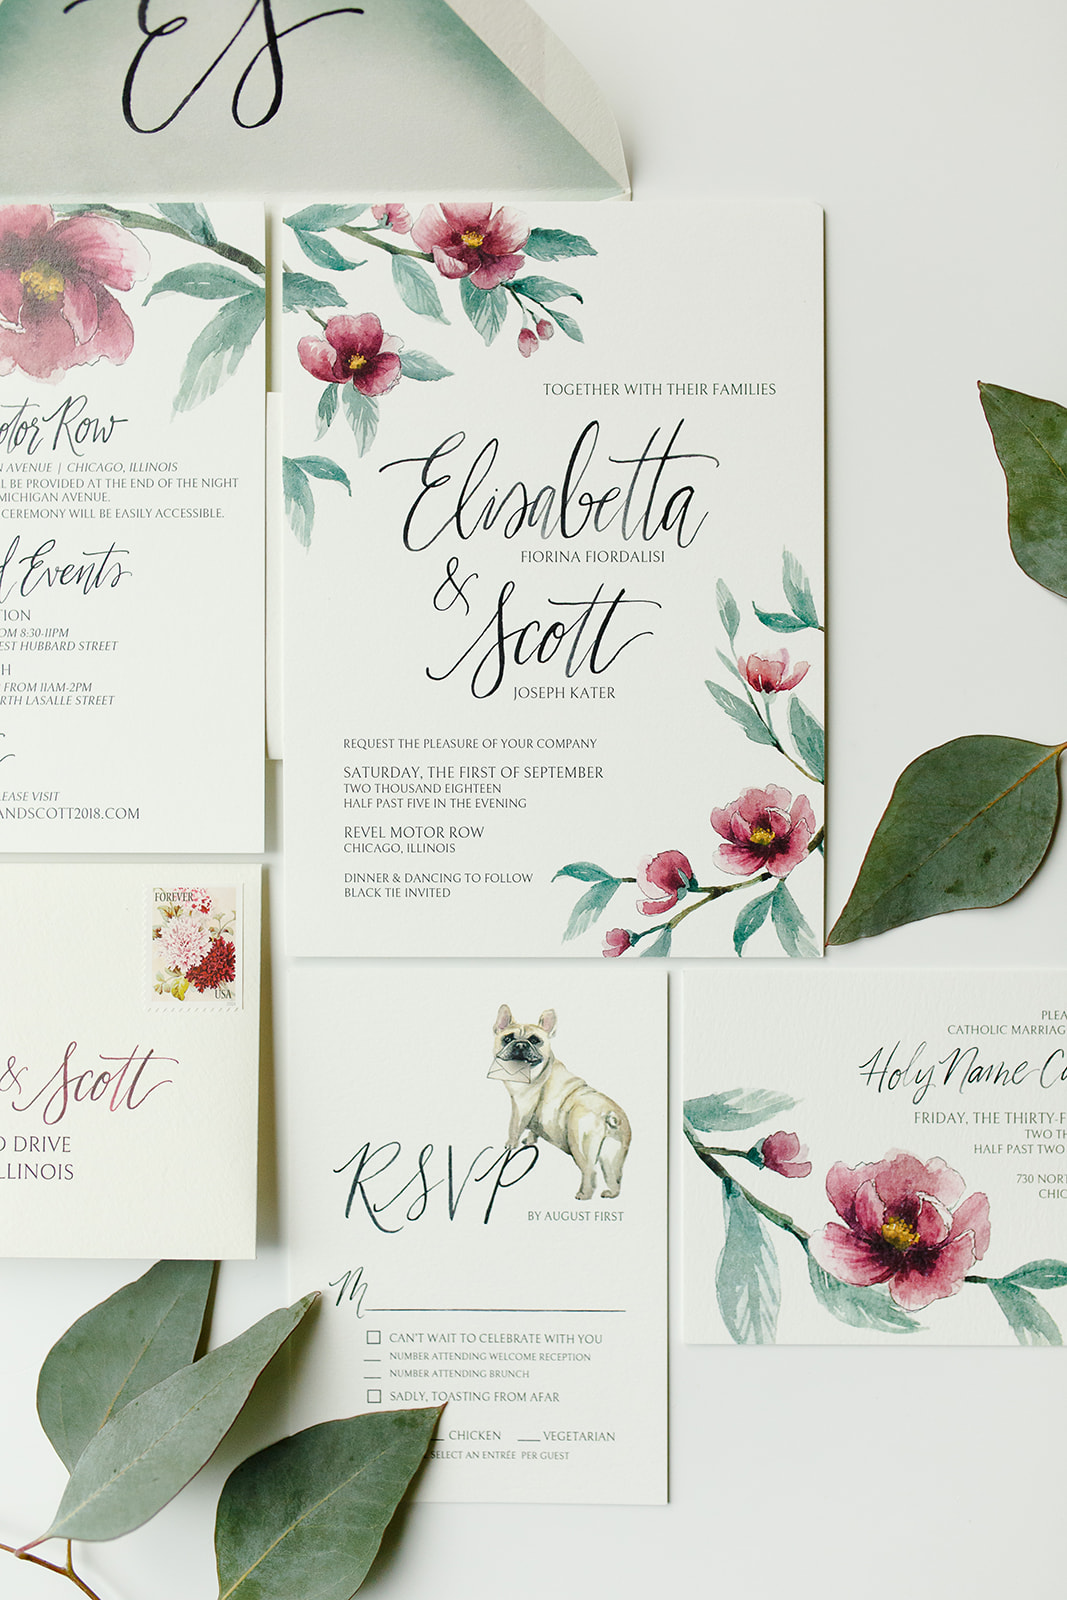 invitation suite for wedding at revel motor row